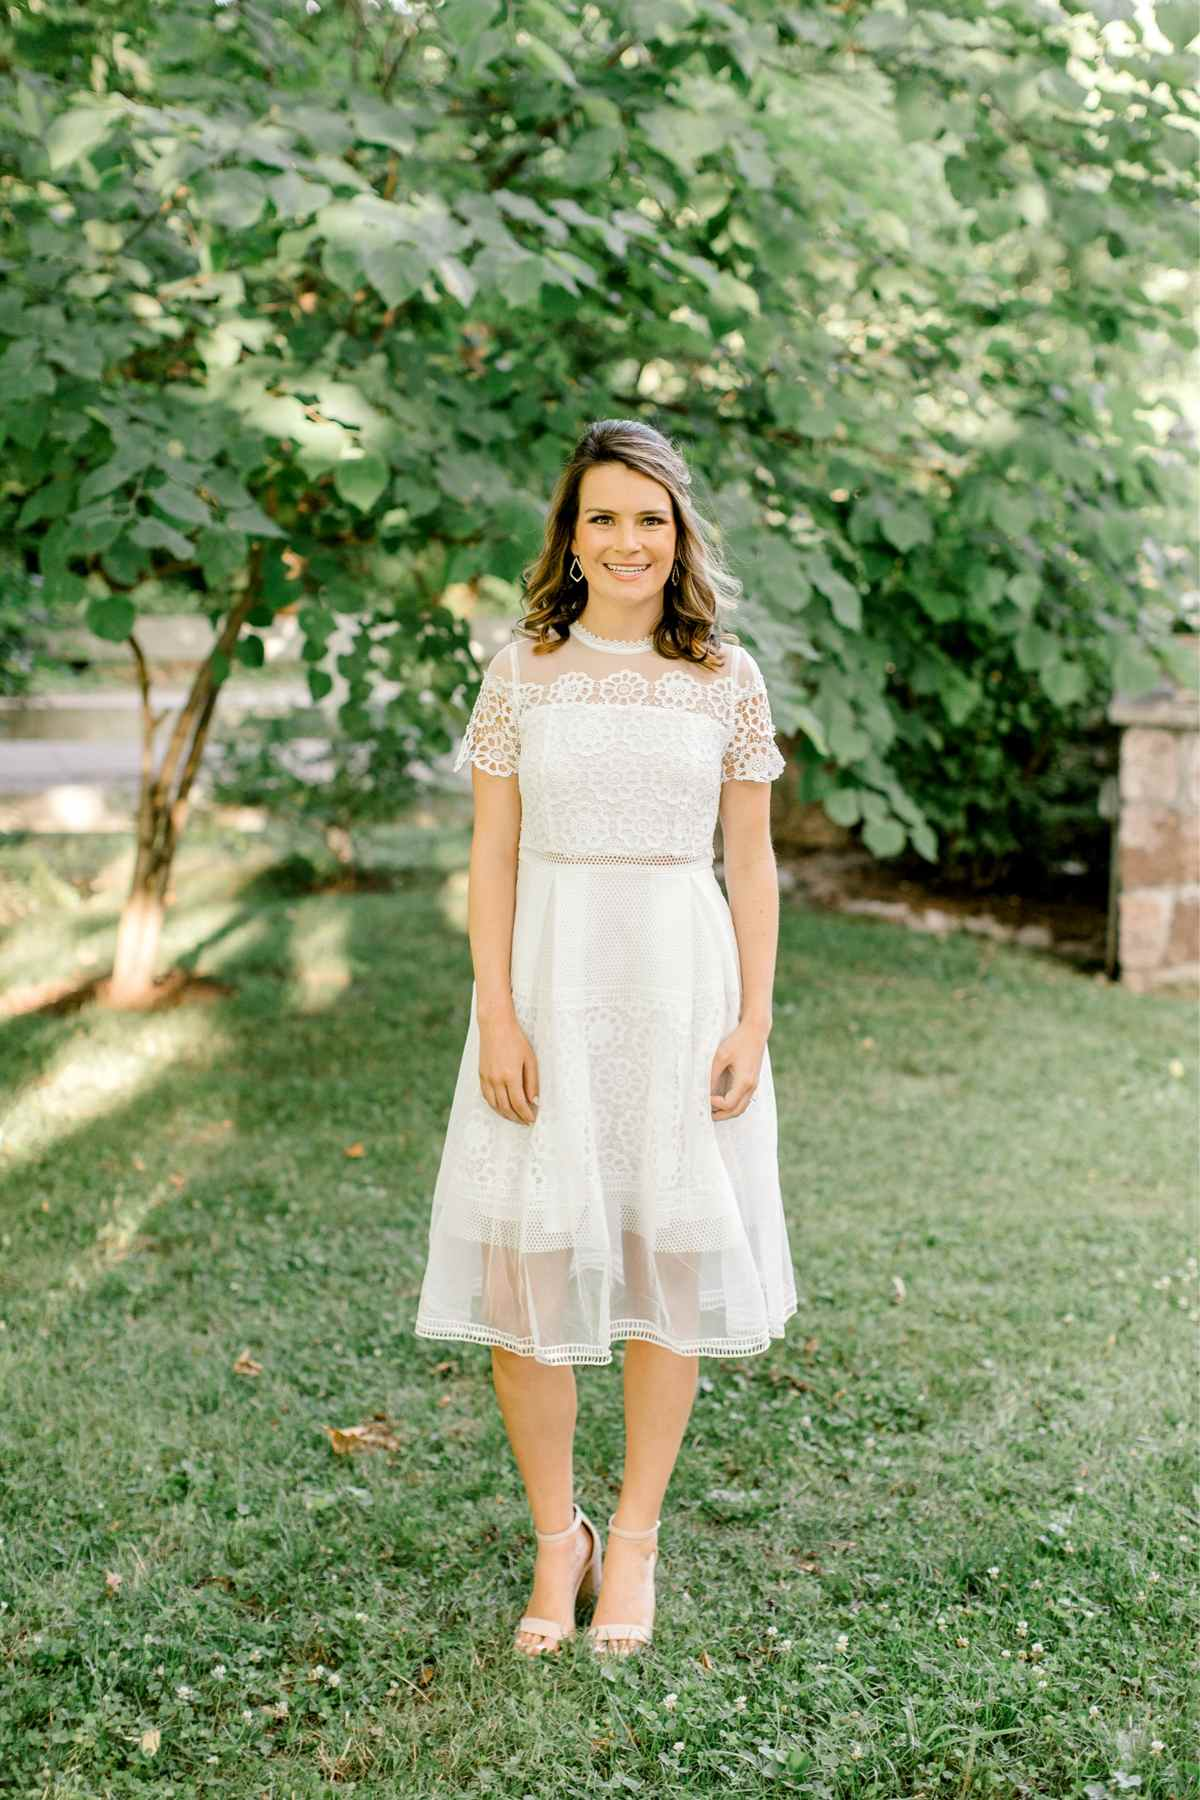 Loddy | A Chic Bridal Midi Dress